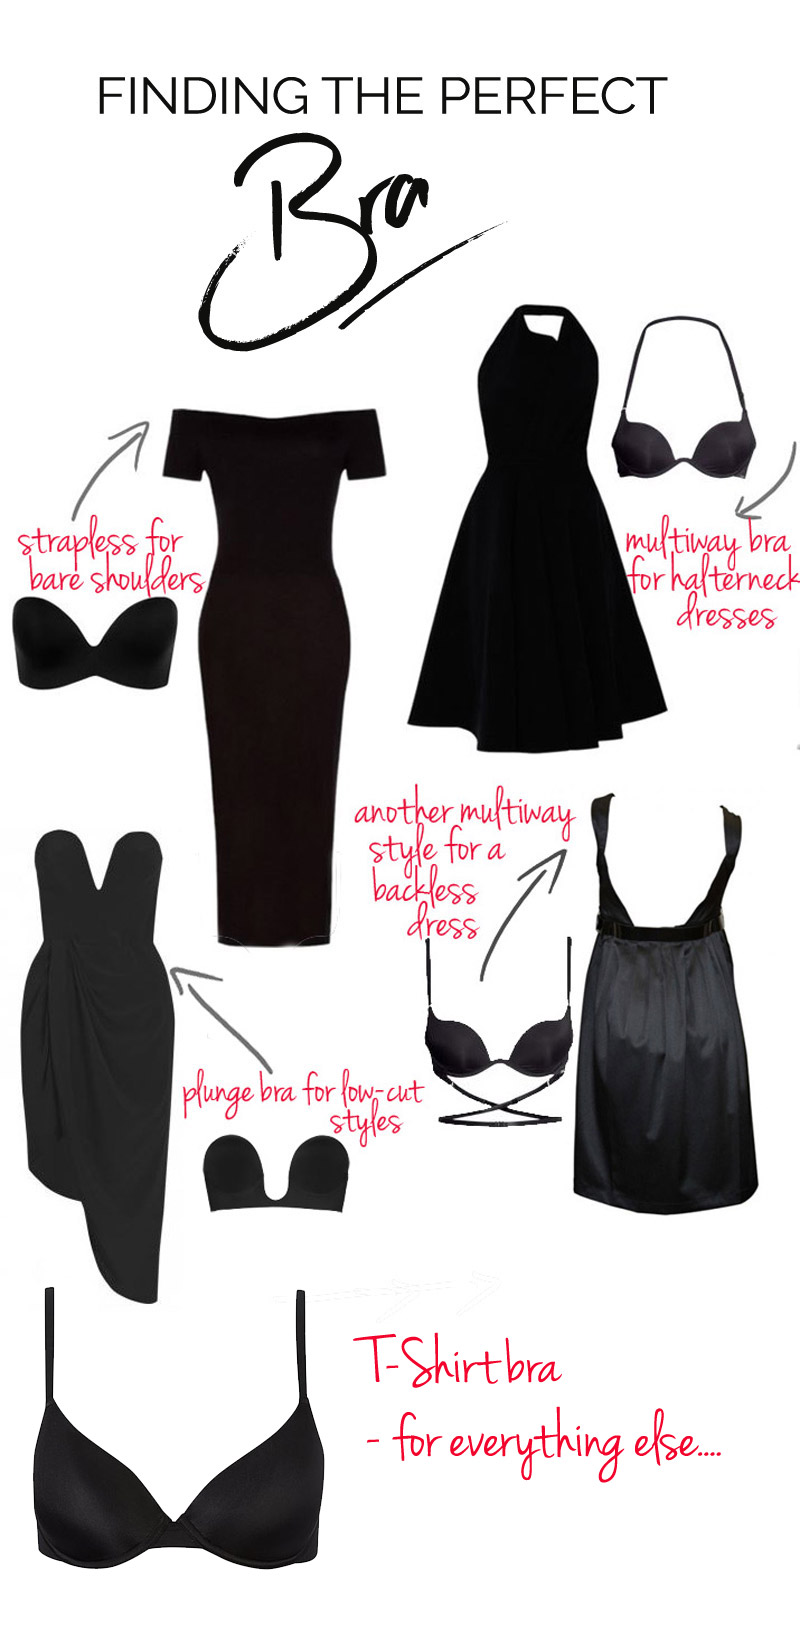 a guide to finding the perfect bra for your dress